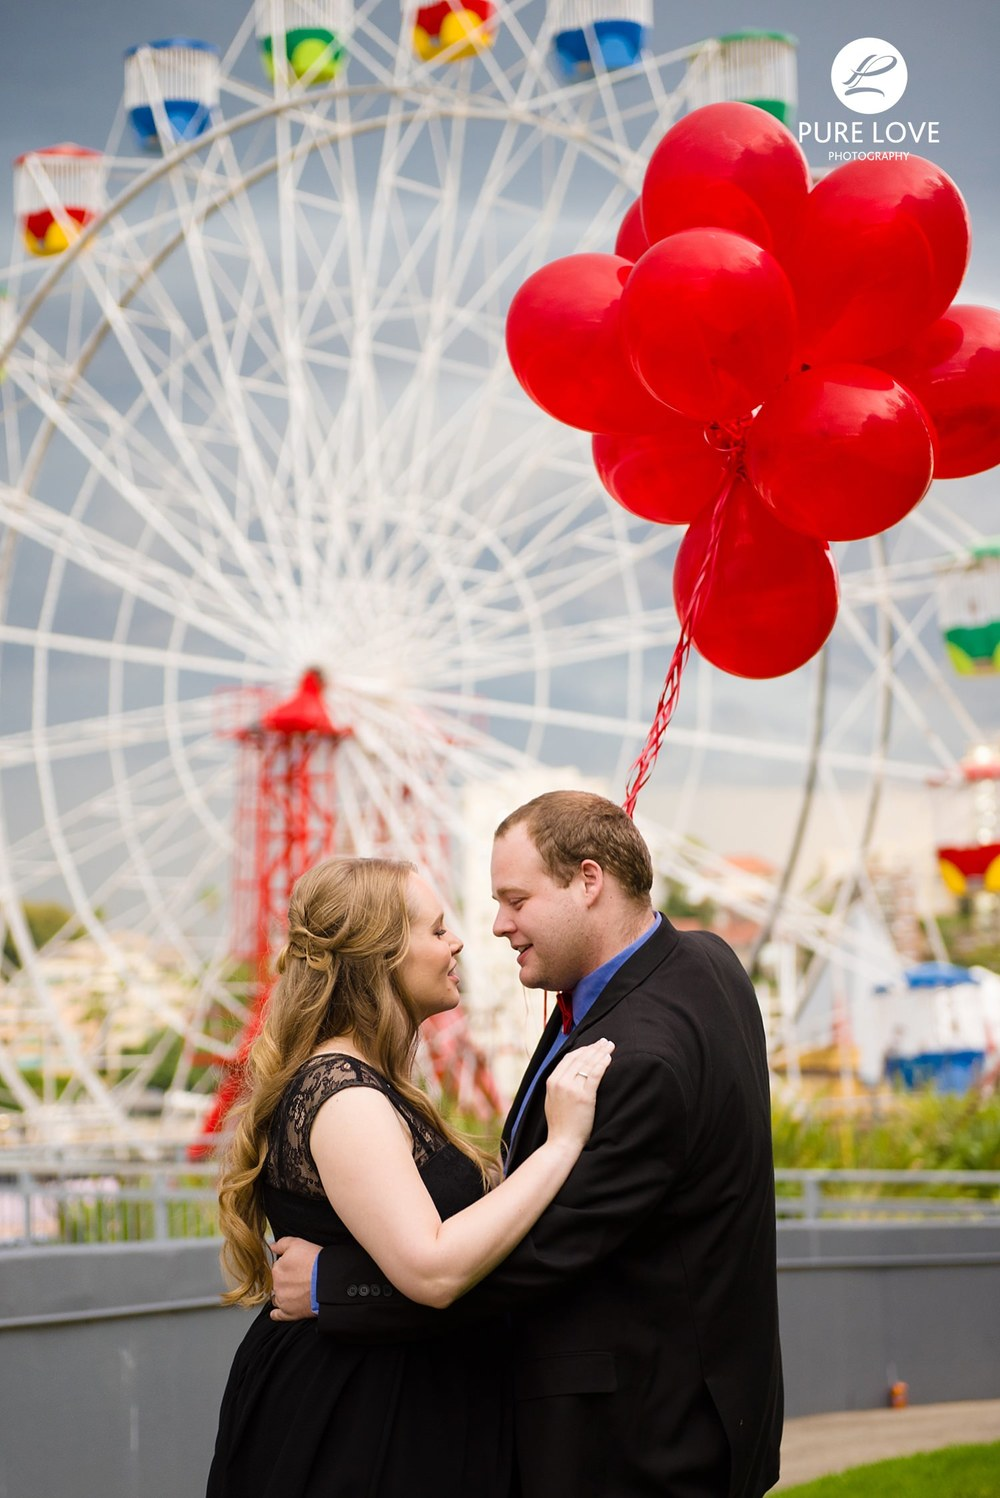 Engagement Session at Amusement Park. Ferris Wheel on the background. Kissing with balloons.